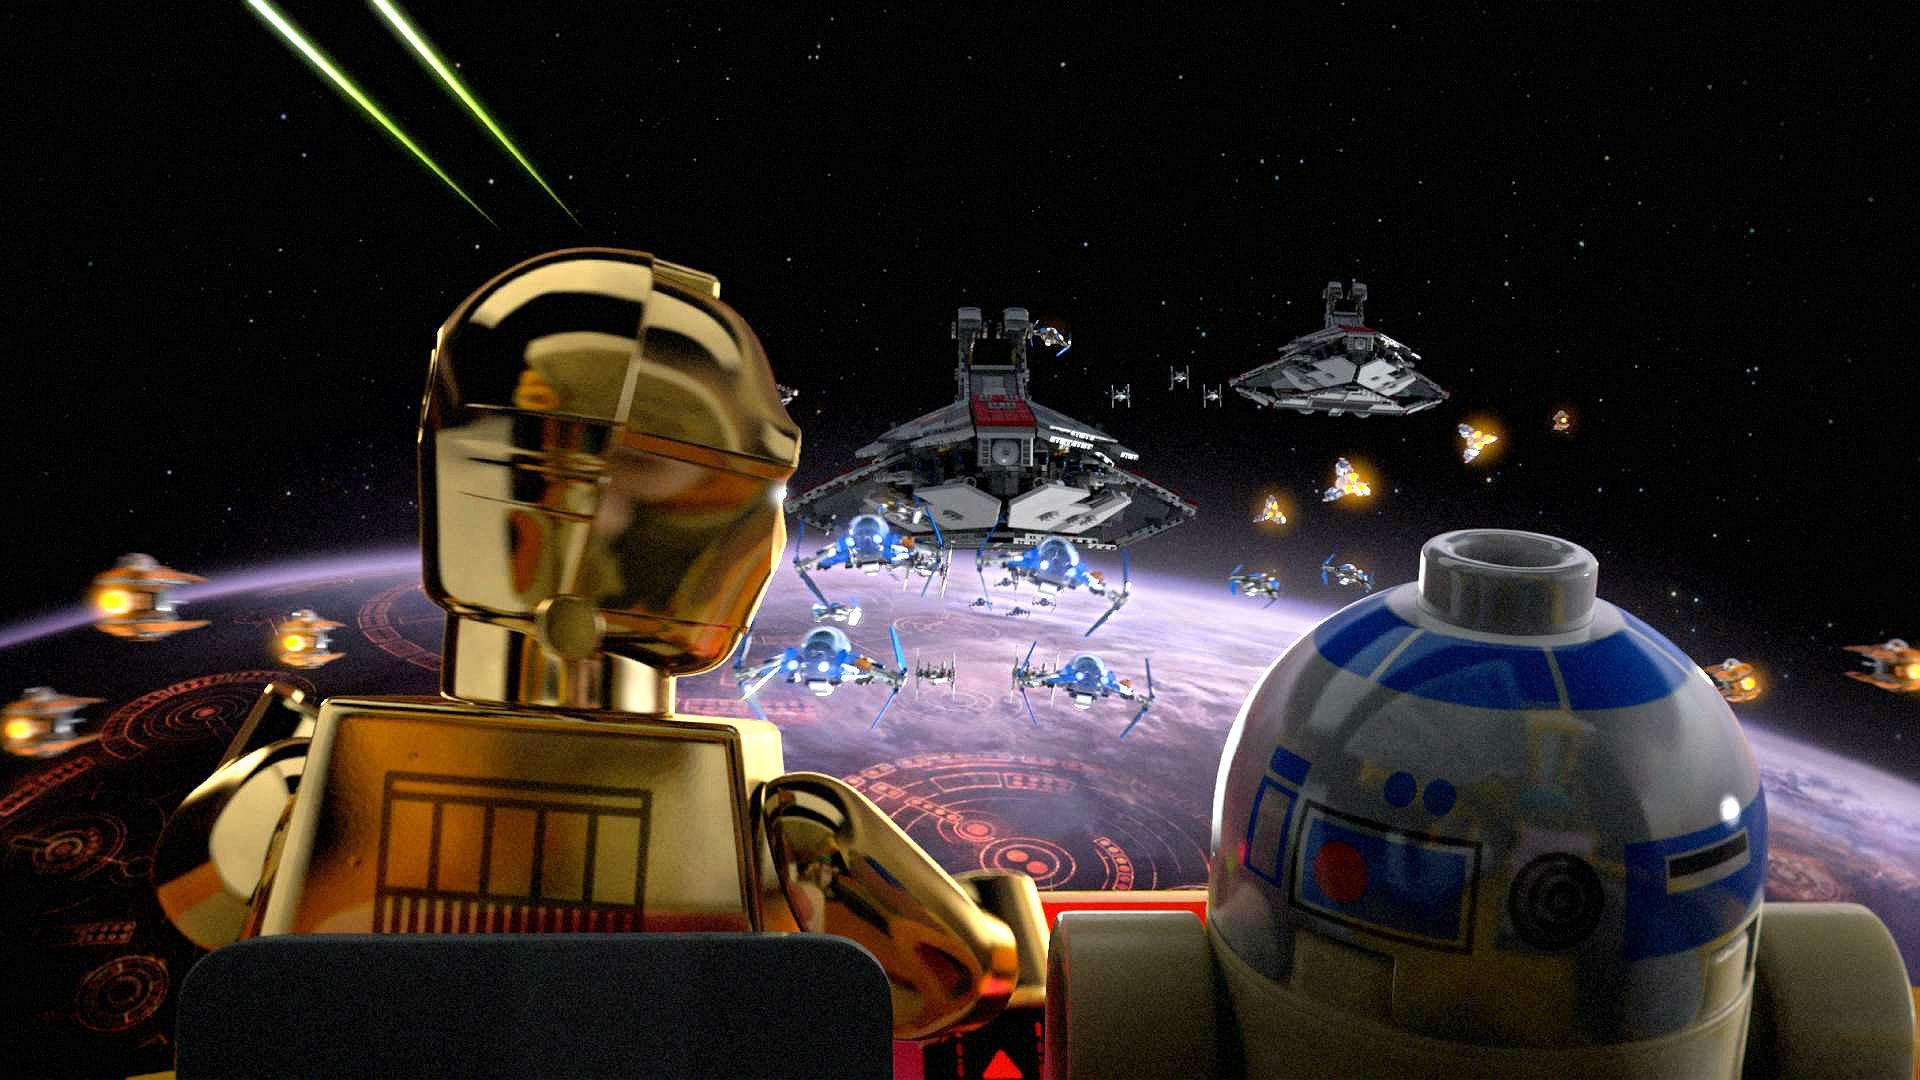 Lego Star Wars Action Adventure Toy Futuristic Family Star Wars Background Lego 1920x1080 Download Hd Wallpaper Wallpapertip